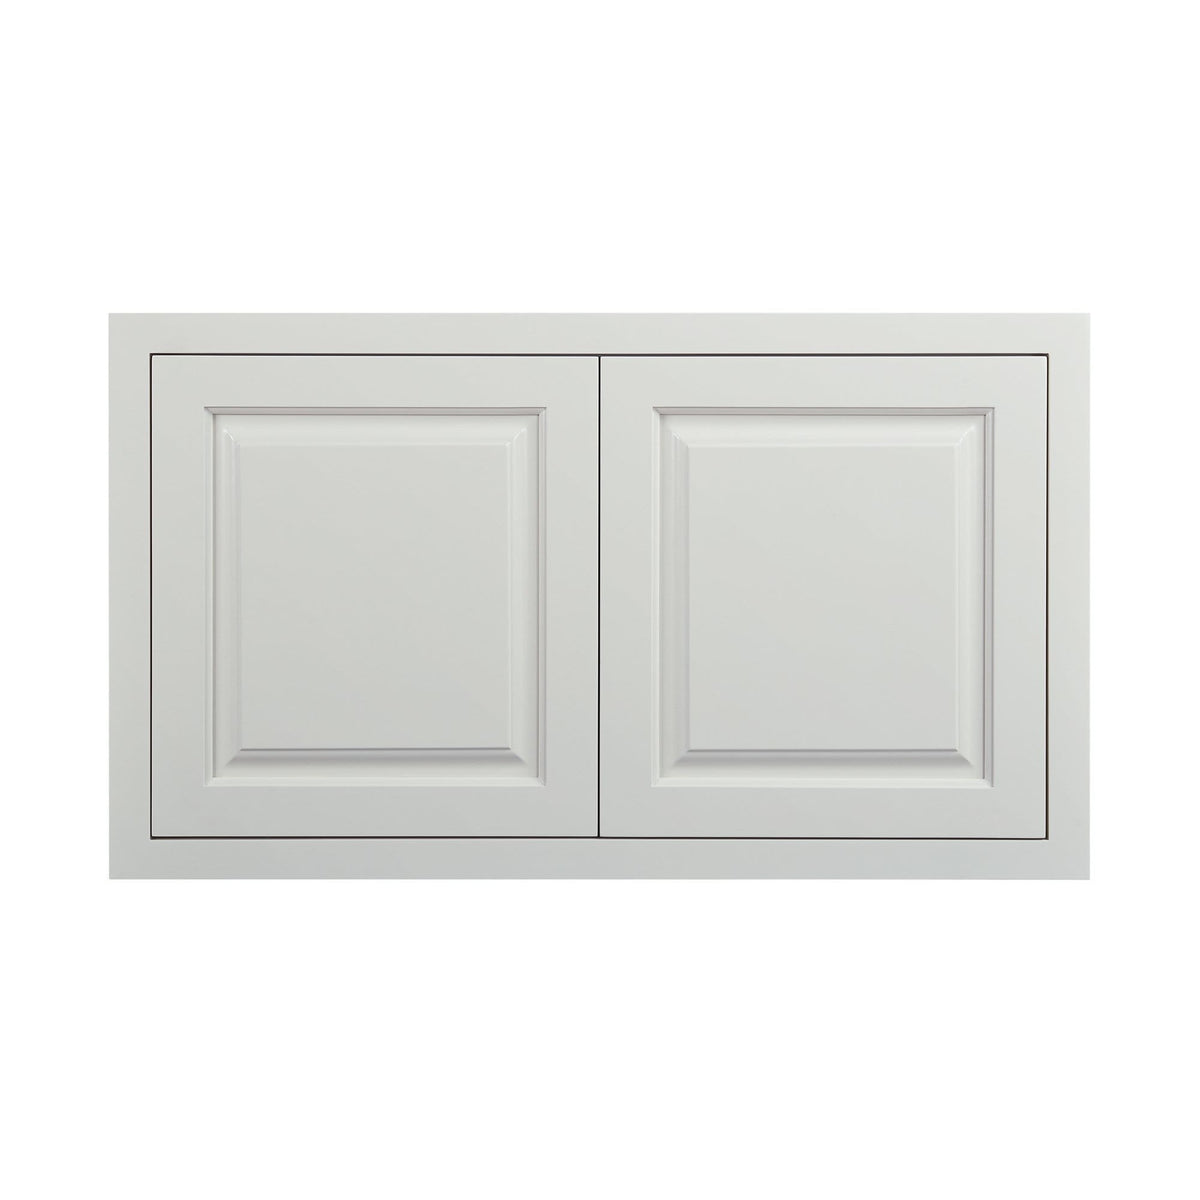 "Wide Bridge Vintage White Inset Raised Panel Wall Cabinet - Double Door 12"", 15"", 18"", 21""& 24"" Tall"